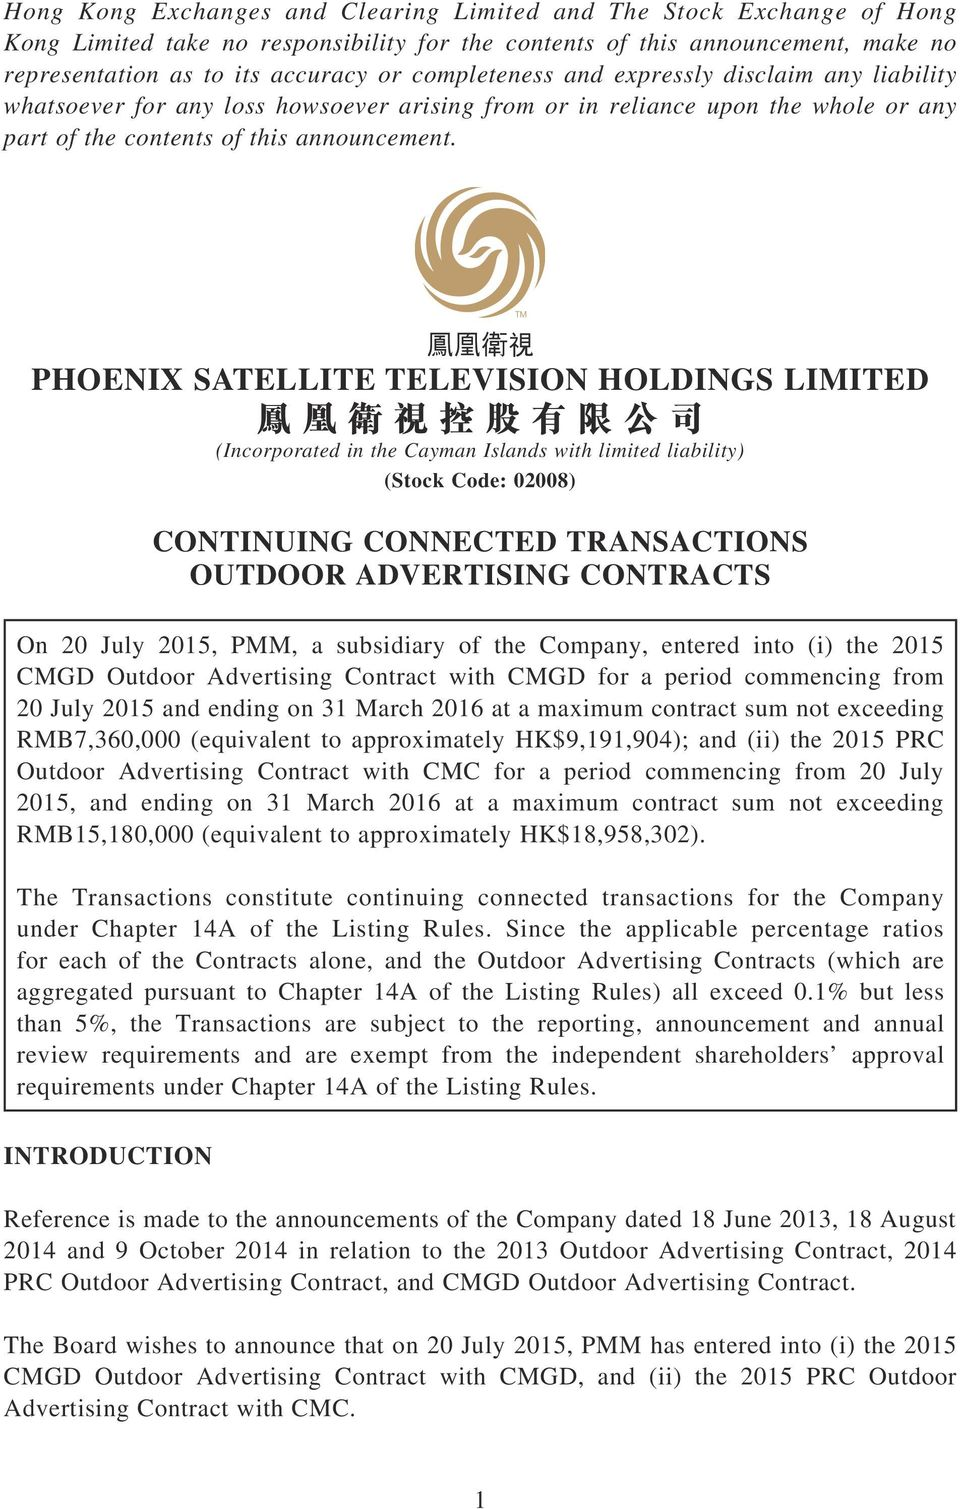 PHOENIX SATELLITE TELEVISION HOLDINGS LIMITED 鳳 凰 衛 視 控 股 有 限 公 司 (Incorporated in the Cayman Islands with limited liability) (Stock Code: 02008) CONTINUING CONNECTED TRANSACTIONS OUTDOOR ADVERTISING